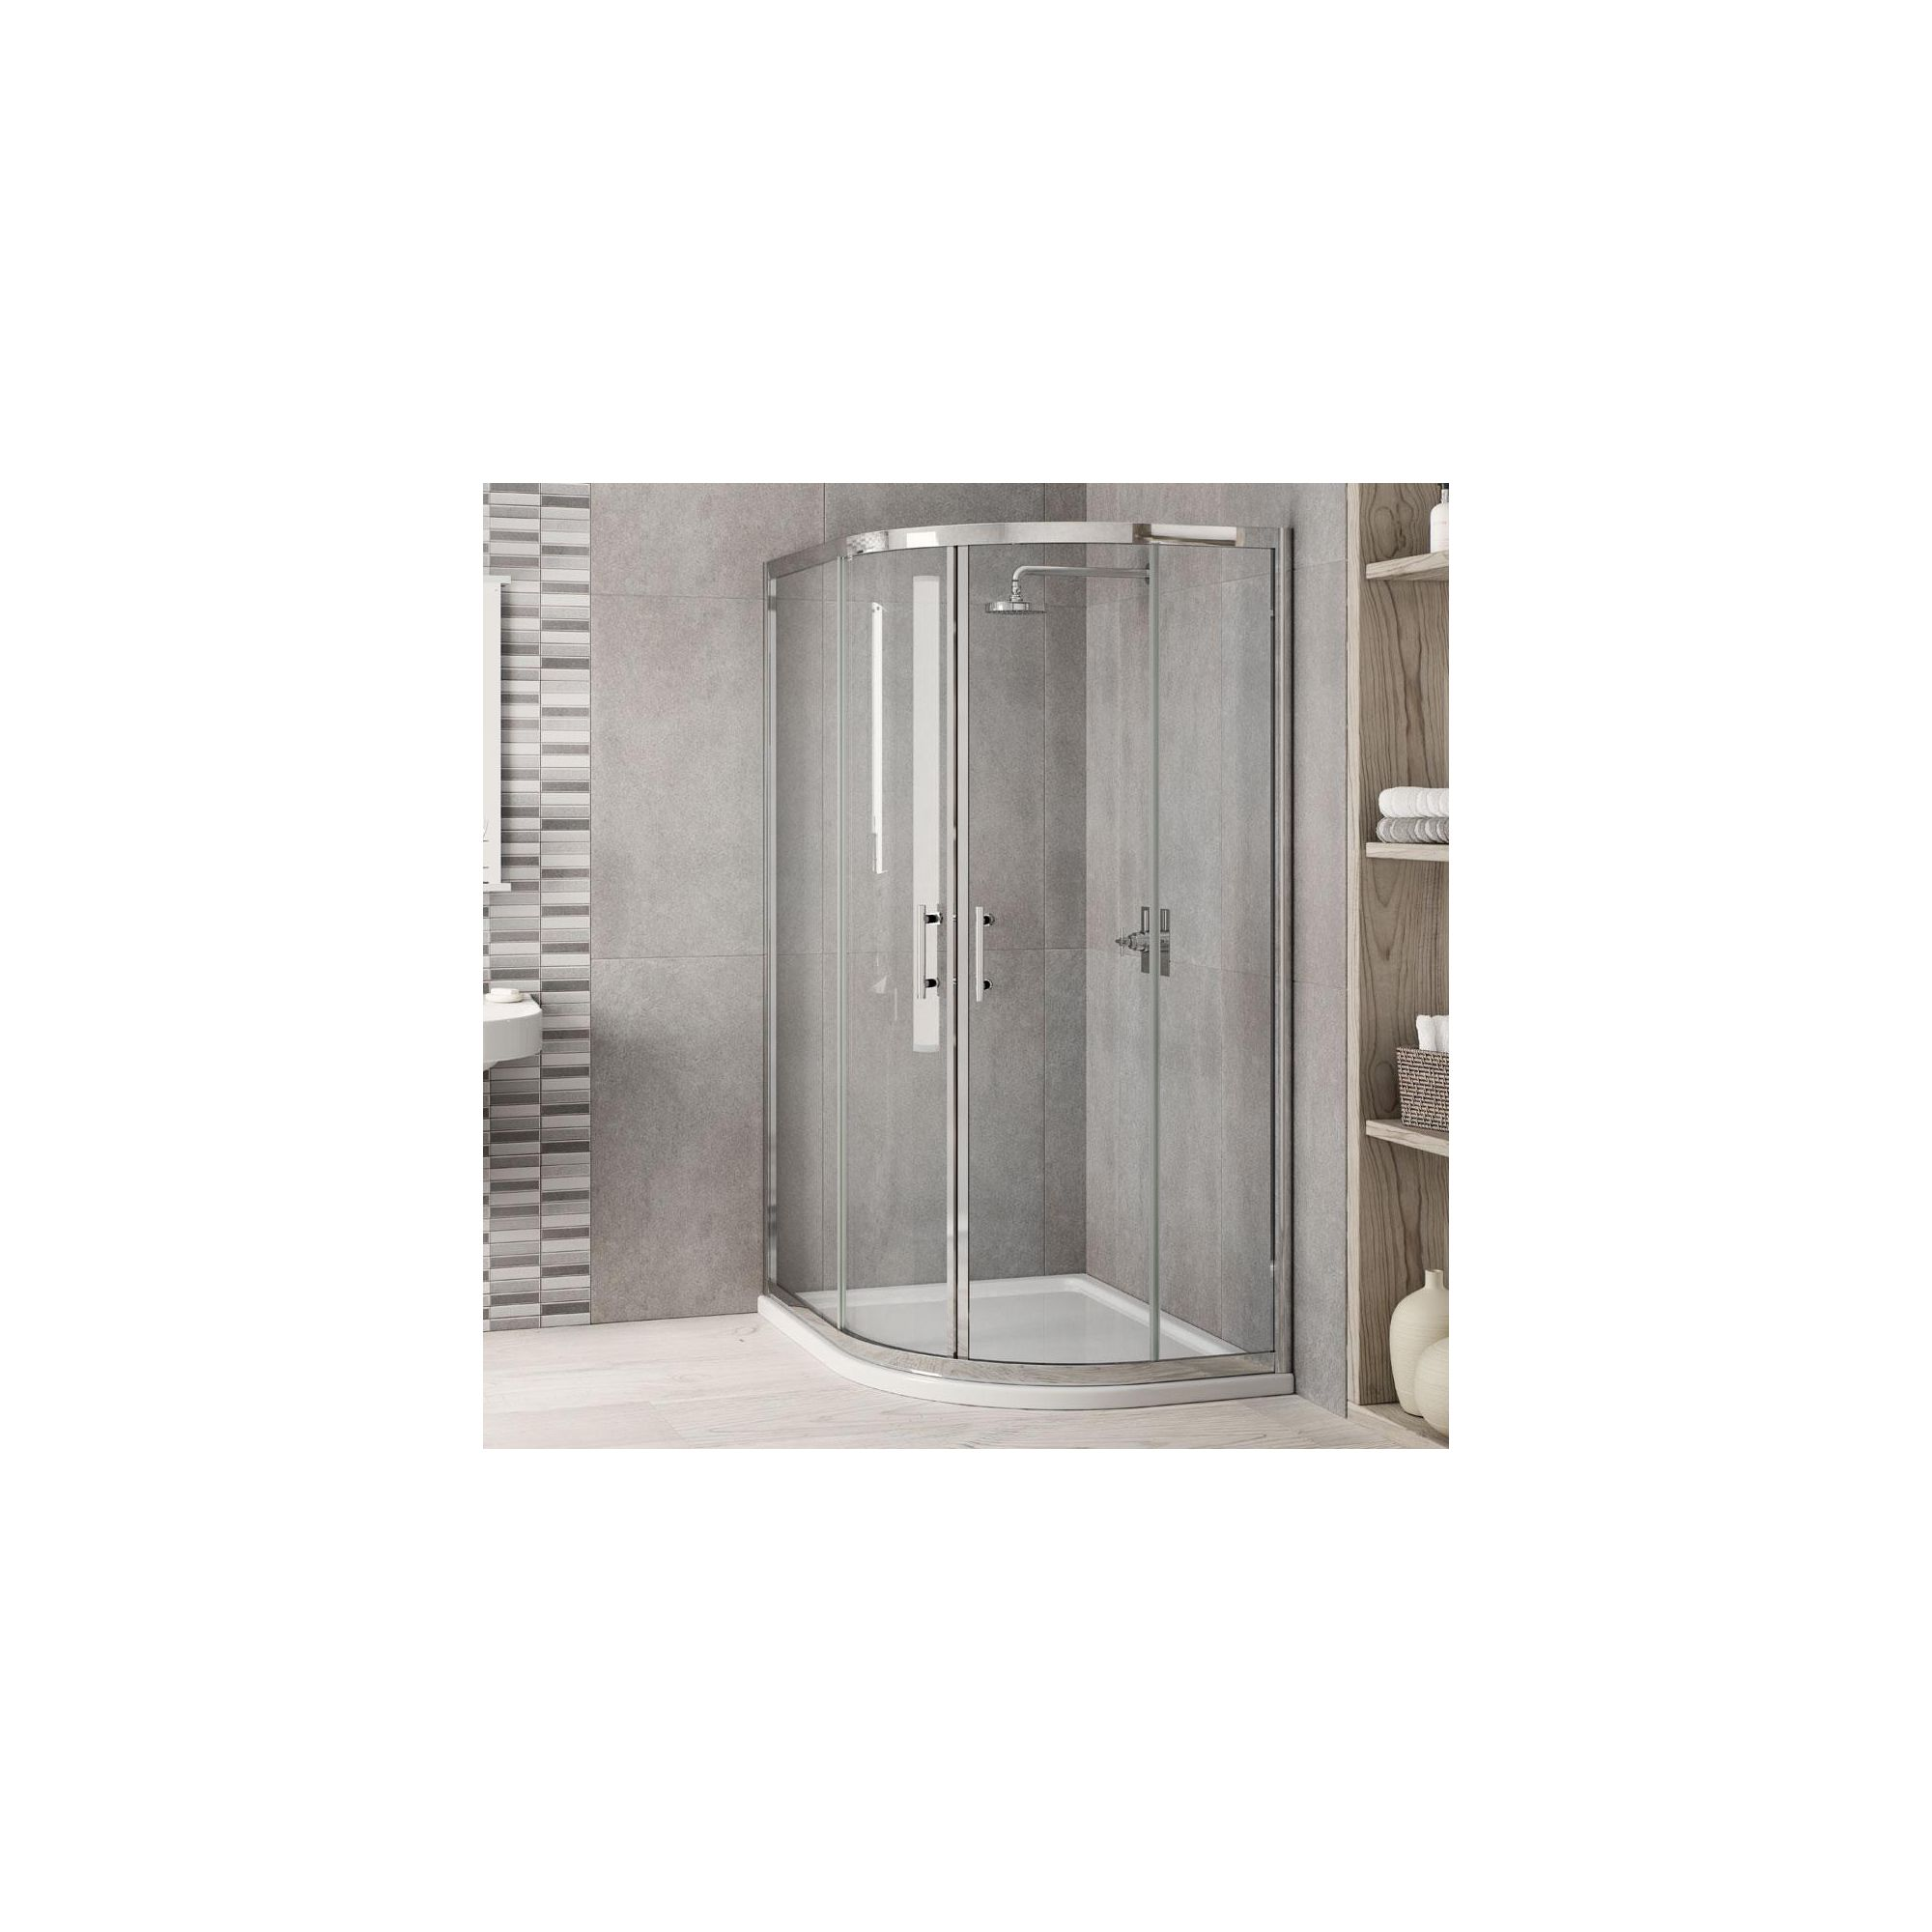 Elemis Inspire Two-Door Offset Quadrant Shower Door, 900mm x 800mm, 6mm Glass at Tesco Direct